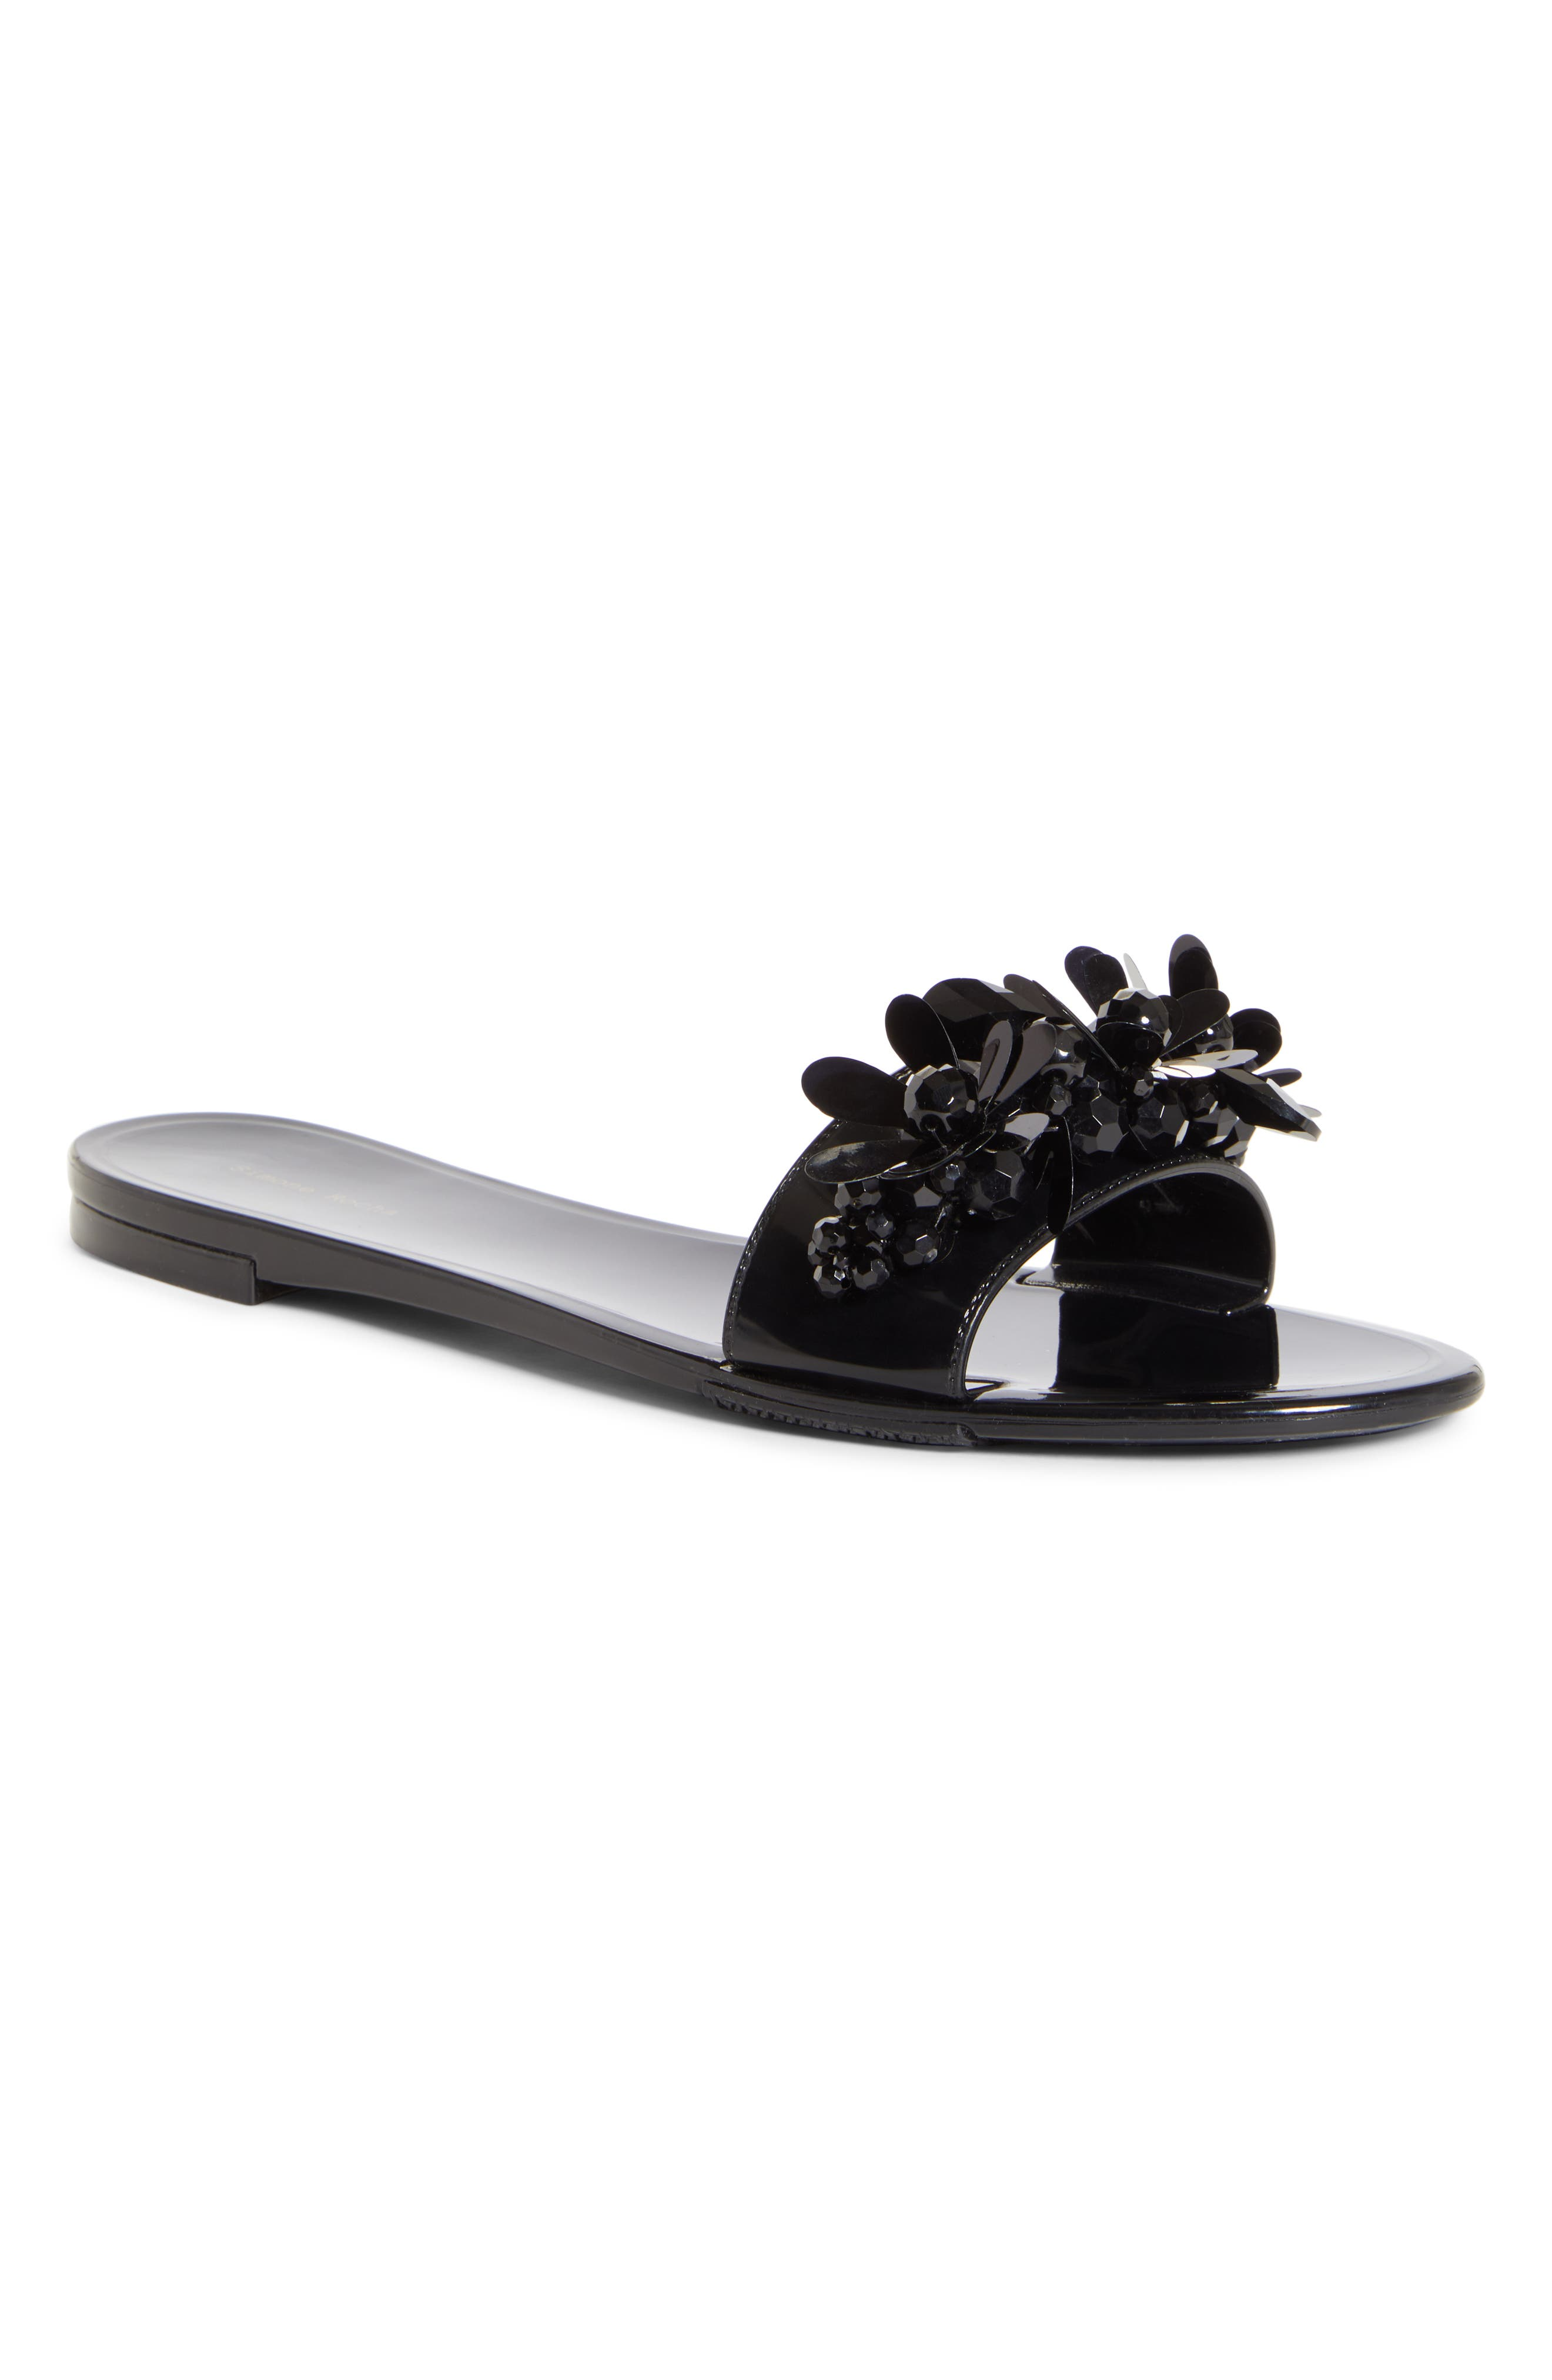 SIMONE ROCHA Embellished Jelly Slide Sandal, Main, color, BLACK/ JET